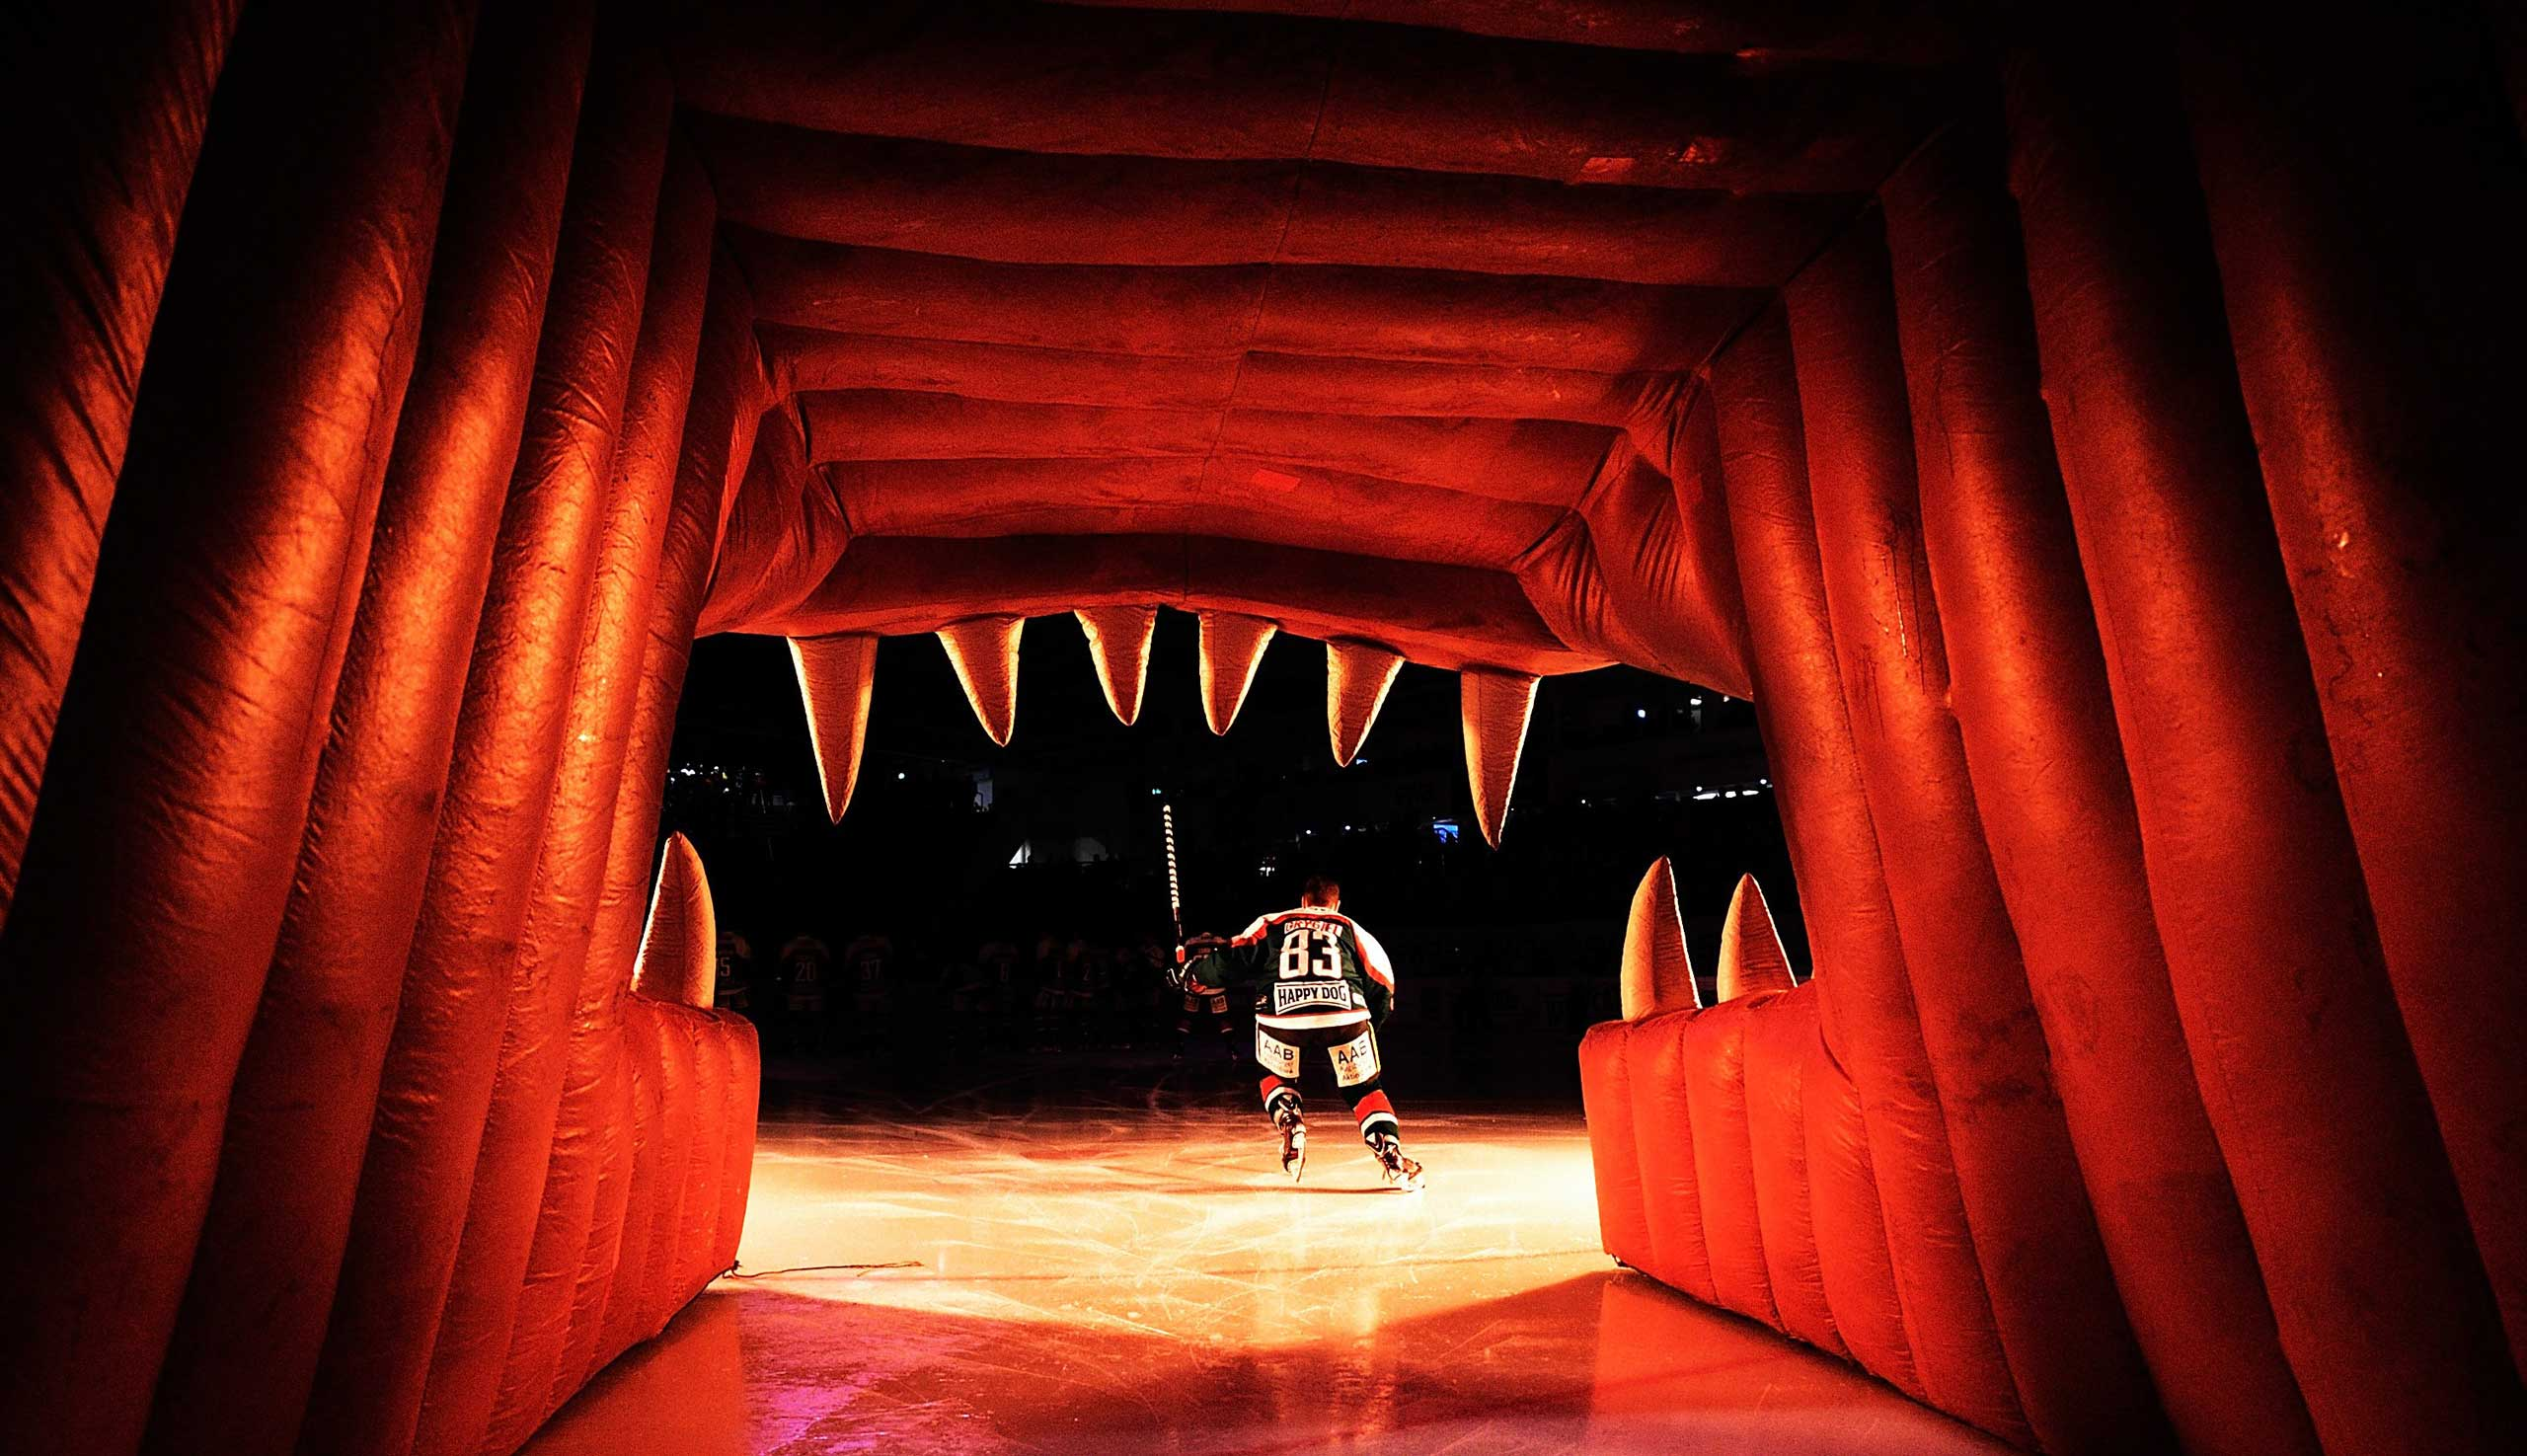 Nov. 2, 2014. Adrian Grygiel of Augsburger Panther skates onto the ice before the DEL Ice Hockey match between Augsburger Panther and Schwenninger Wild Wings at Curt Frenzel Stadium in Augsburg, Germany.